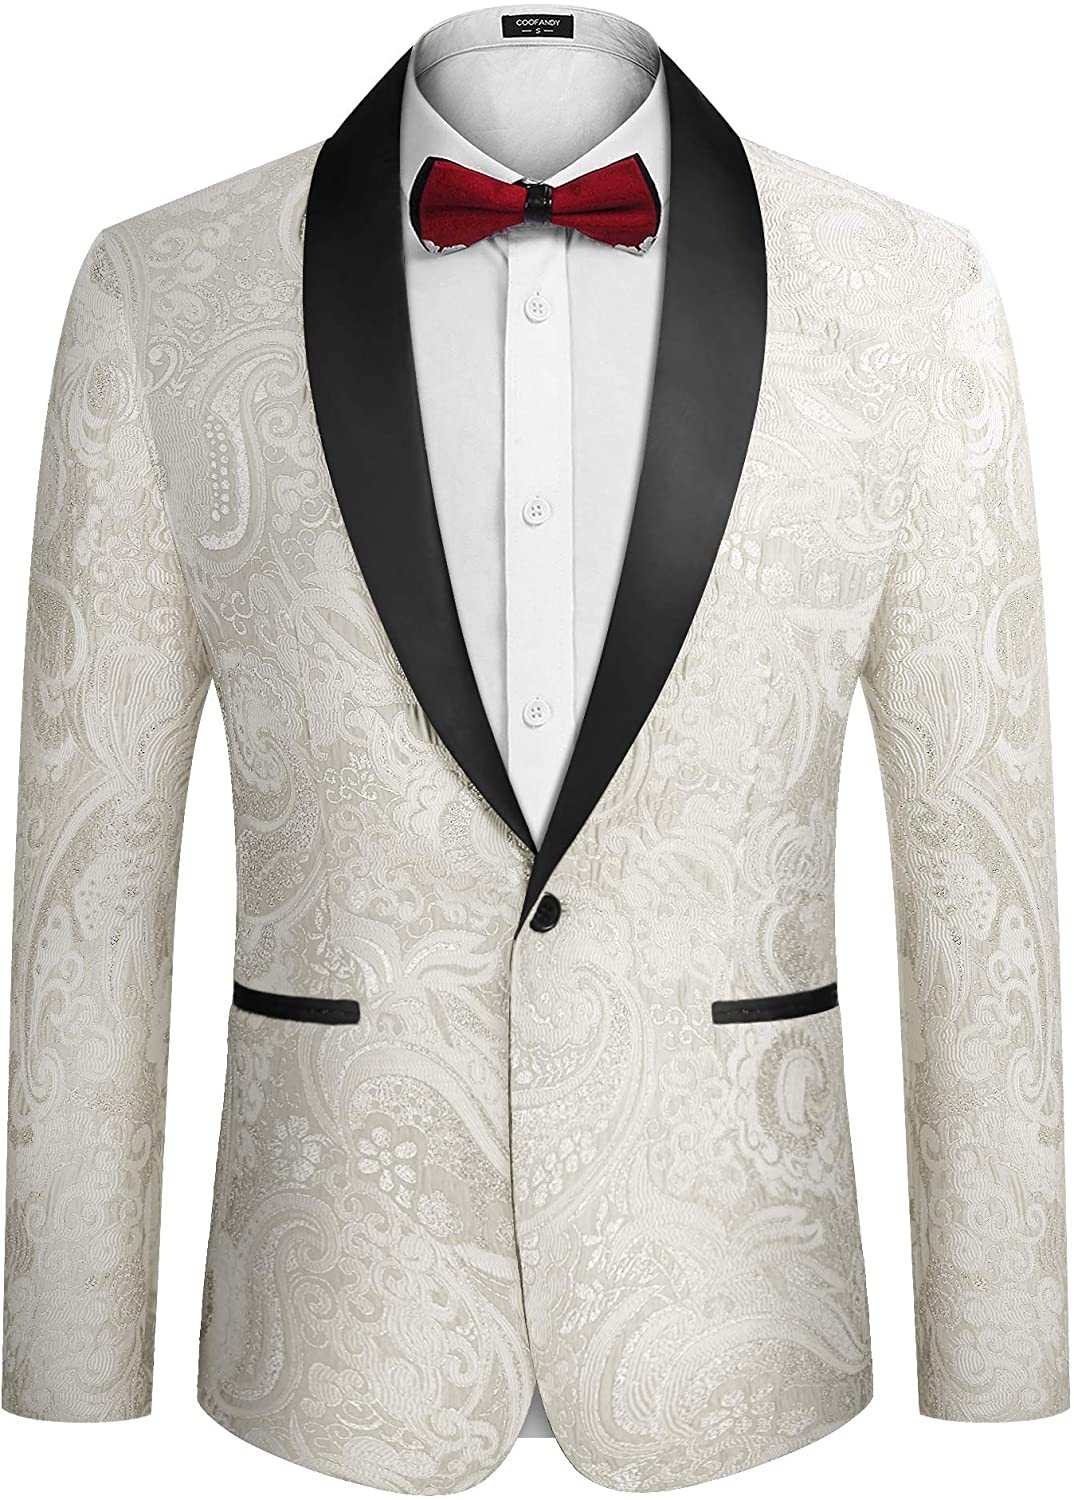 COOFANDY Men's Floral Dress Suit Luxury Embroidered Wedding Blazer Dinner Tuxedo Jacket for Party